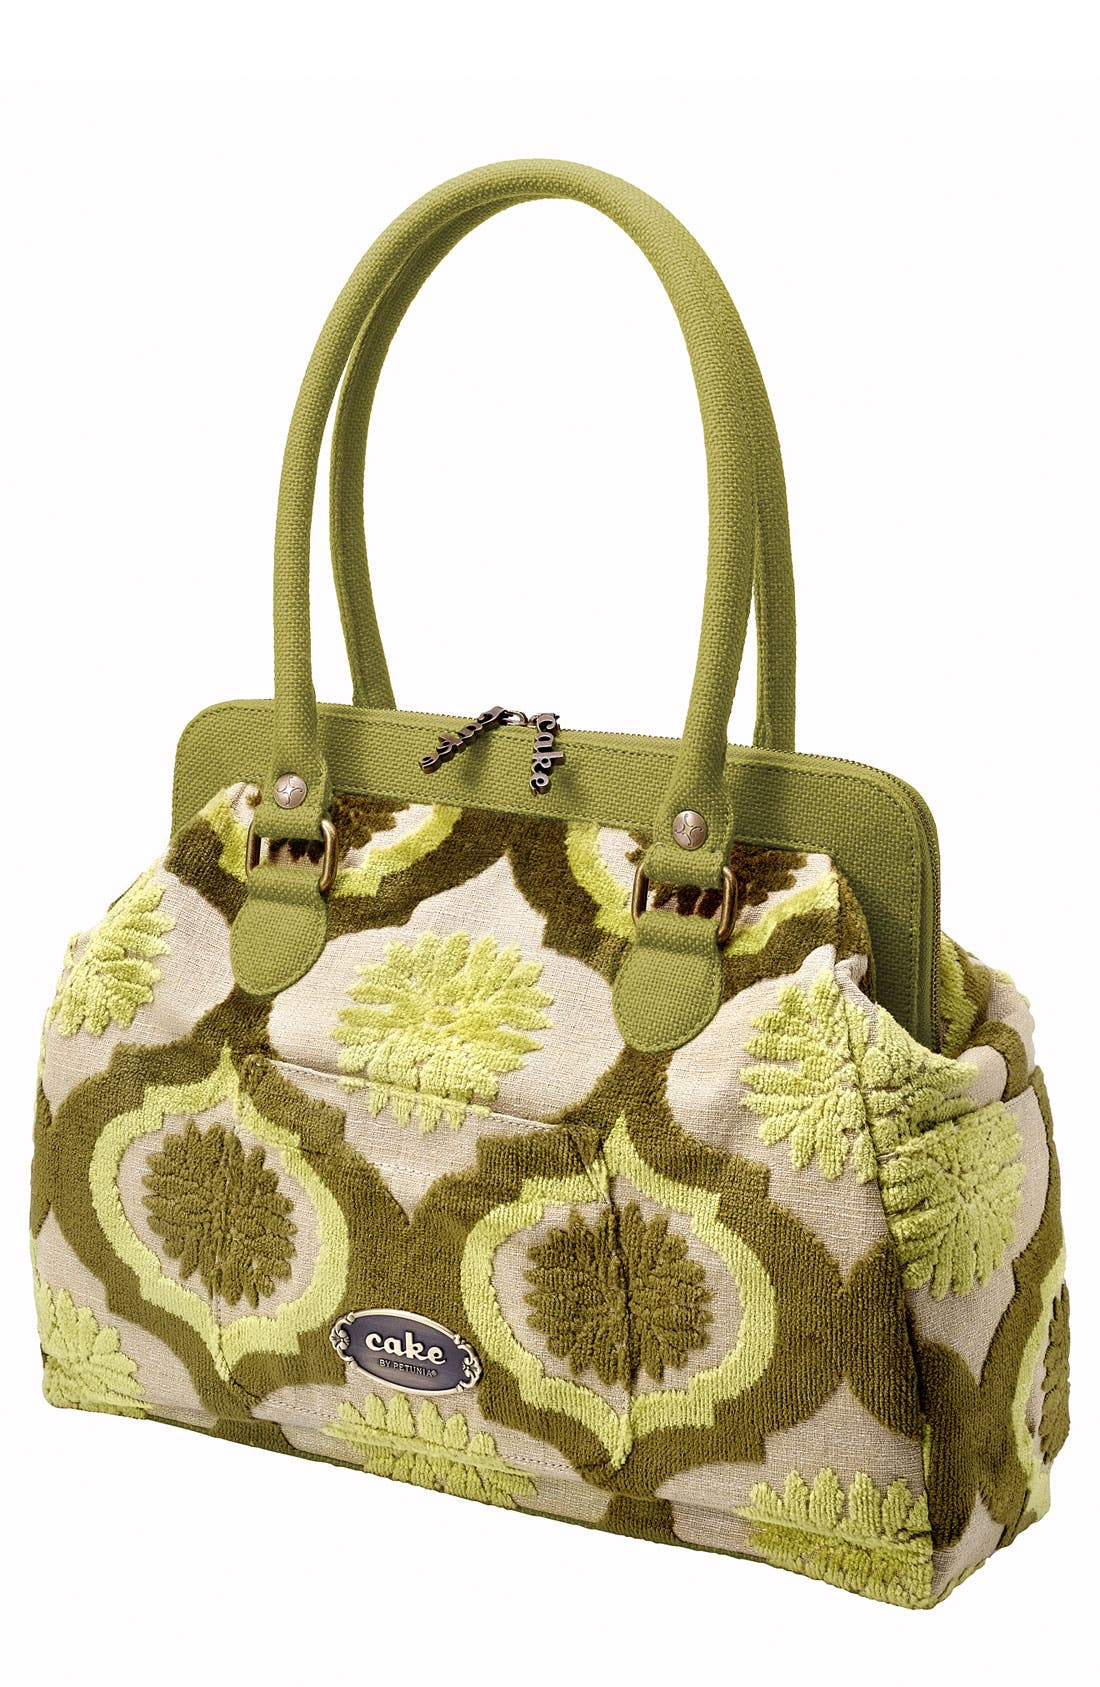 Alternate Image 1 Selected - Petunia Pickle Bottom 'Cosmopolitan Carryall - Cake' Diaper Bag